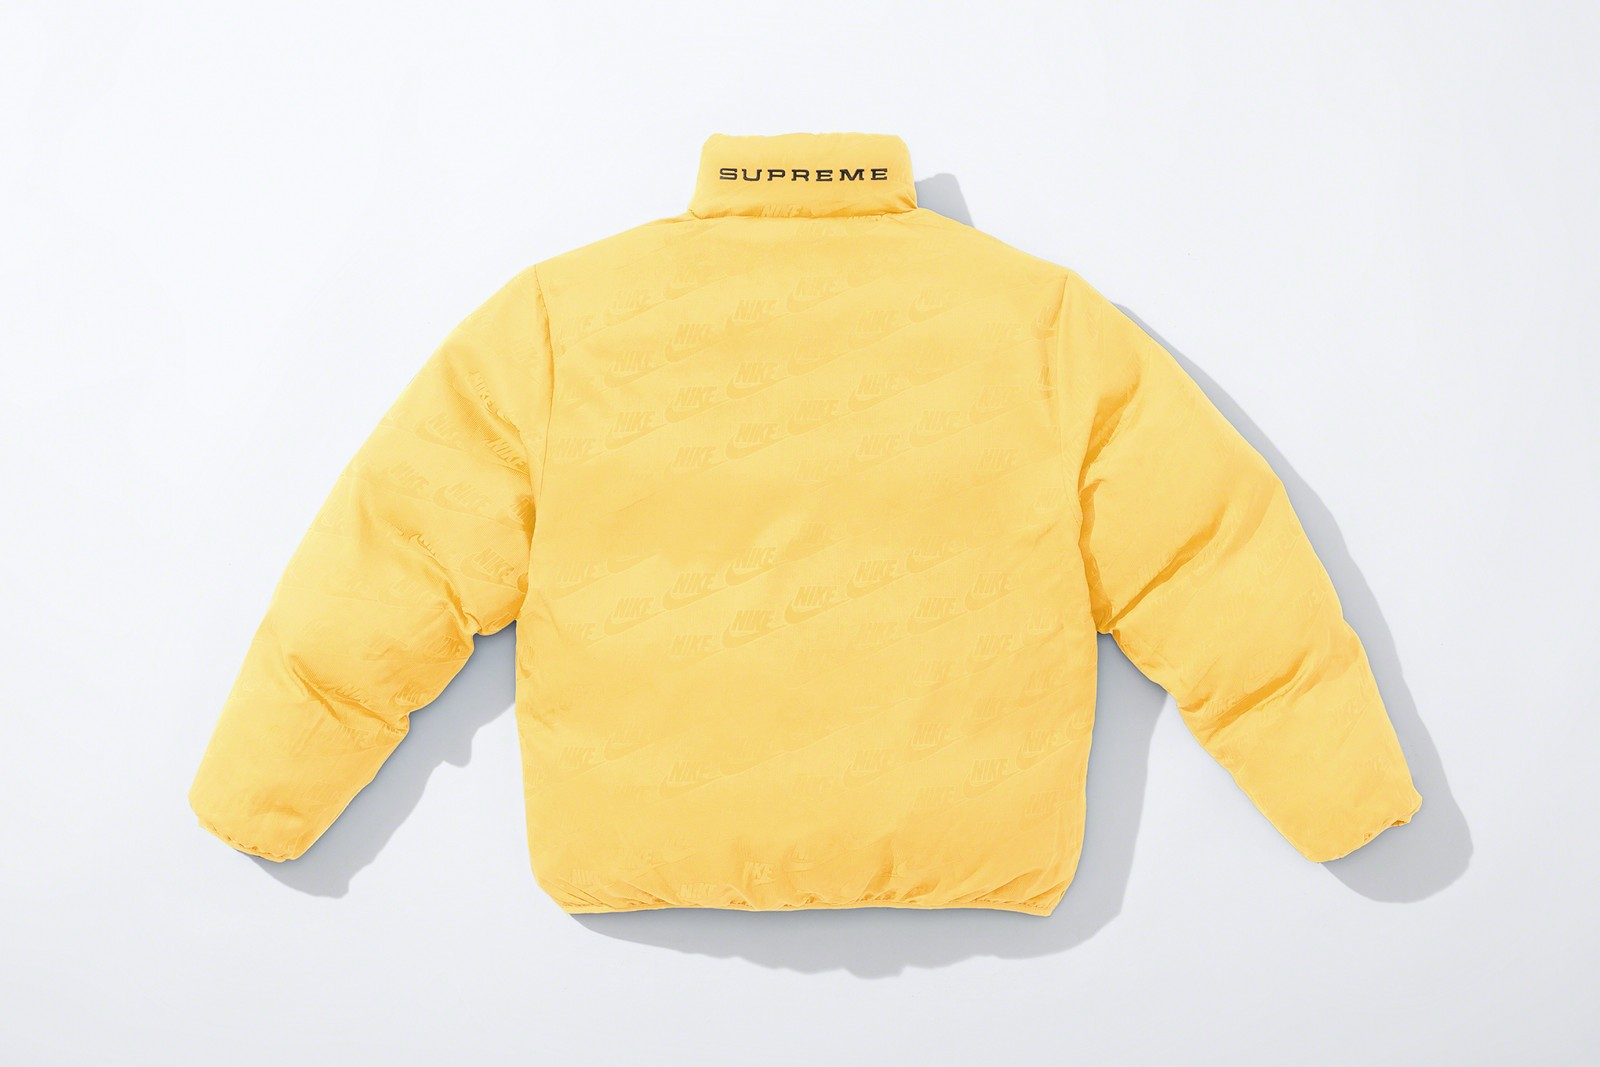 supreme nike spring collaboration hoodies puffer jackets tracksuit accessories release where to buy info